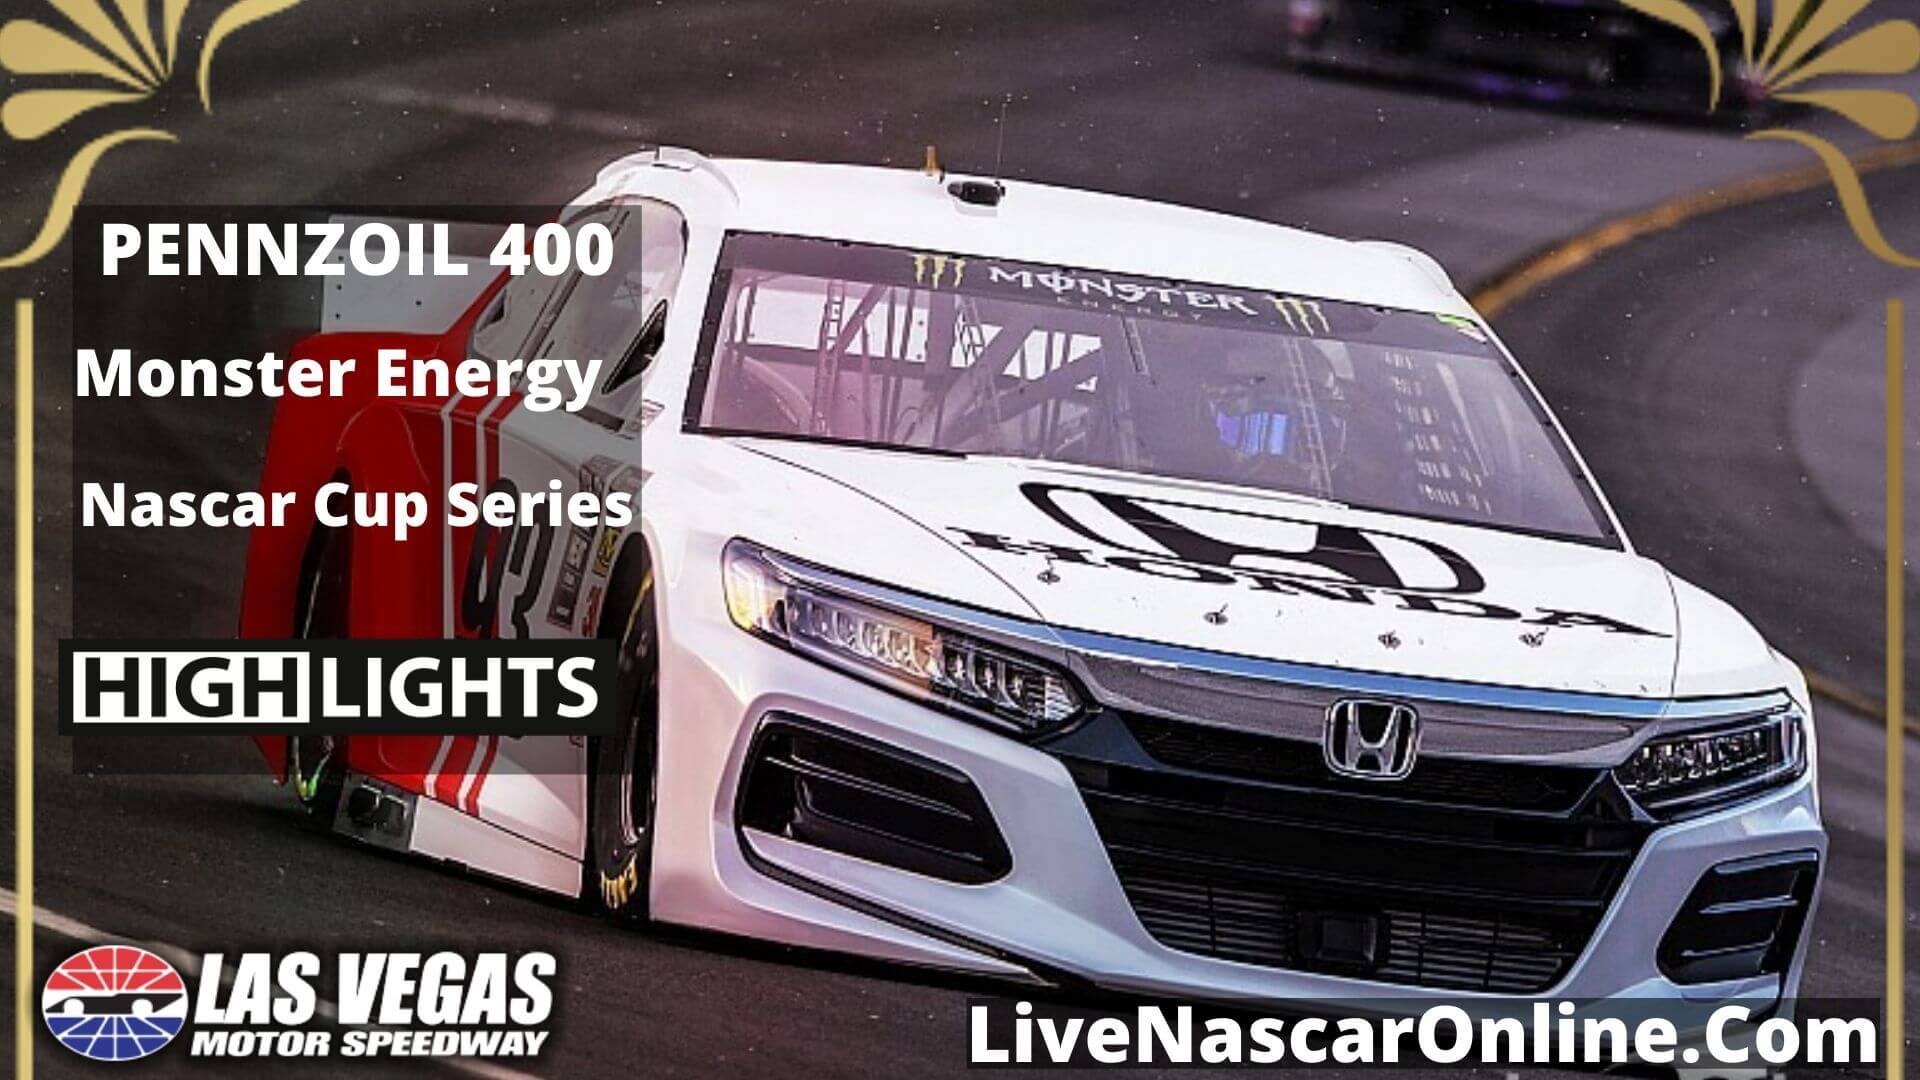 NASCAR CUP PENNZOIL 400 Highlights 2020